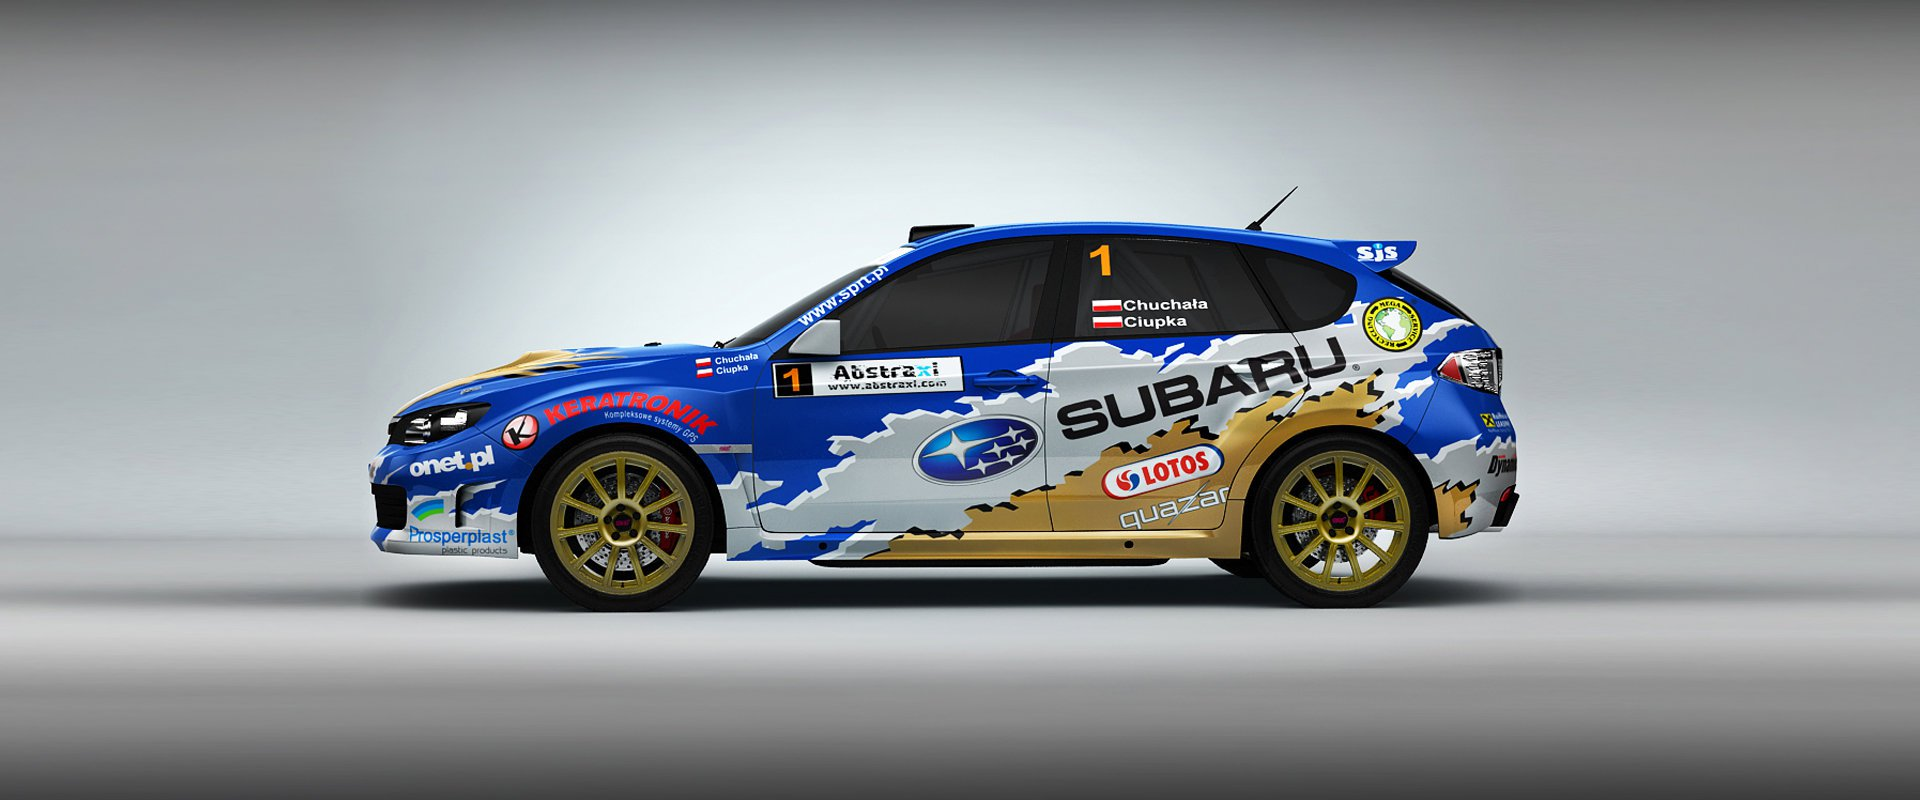 Subaru Poland Rally Team #2